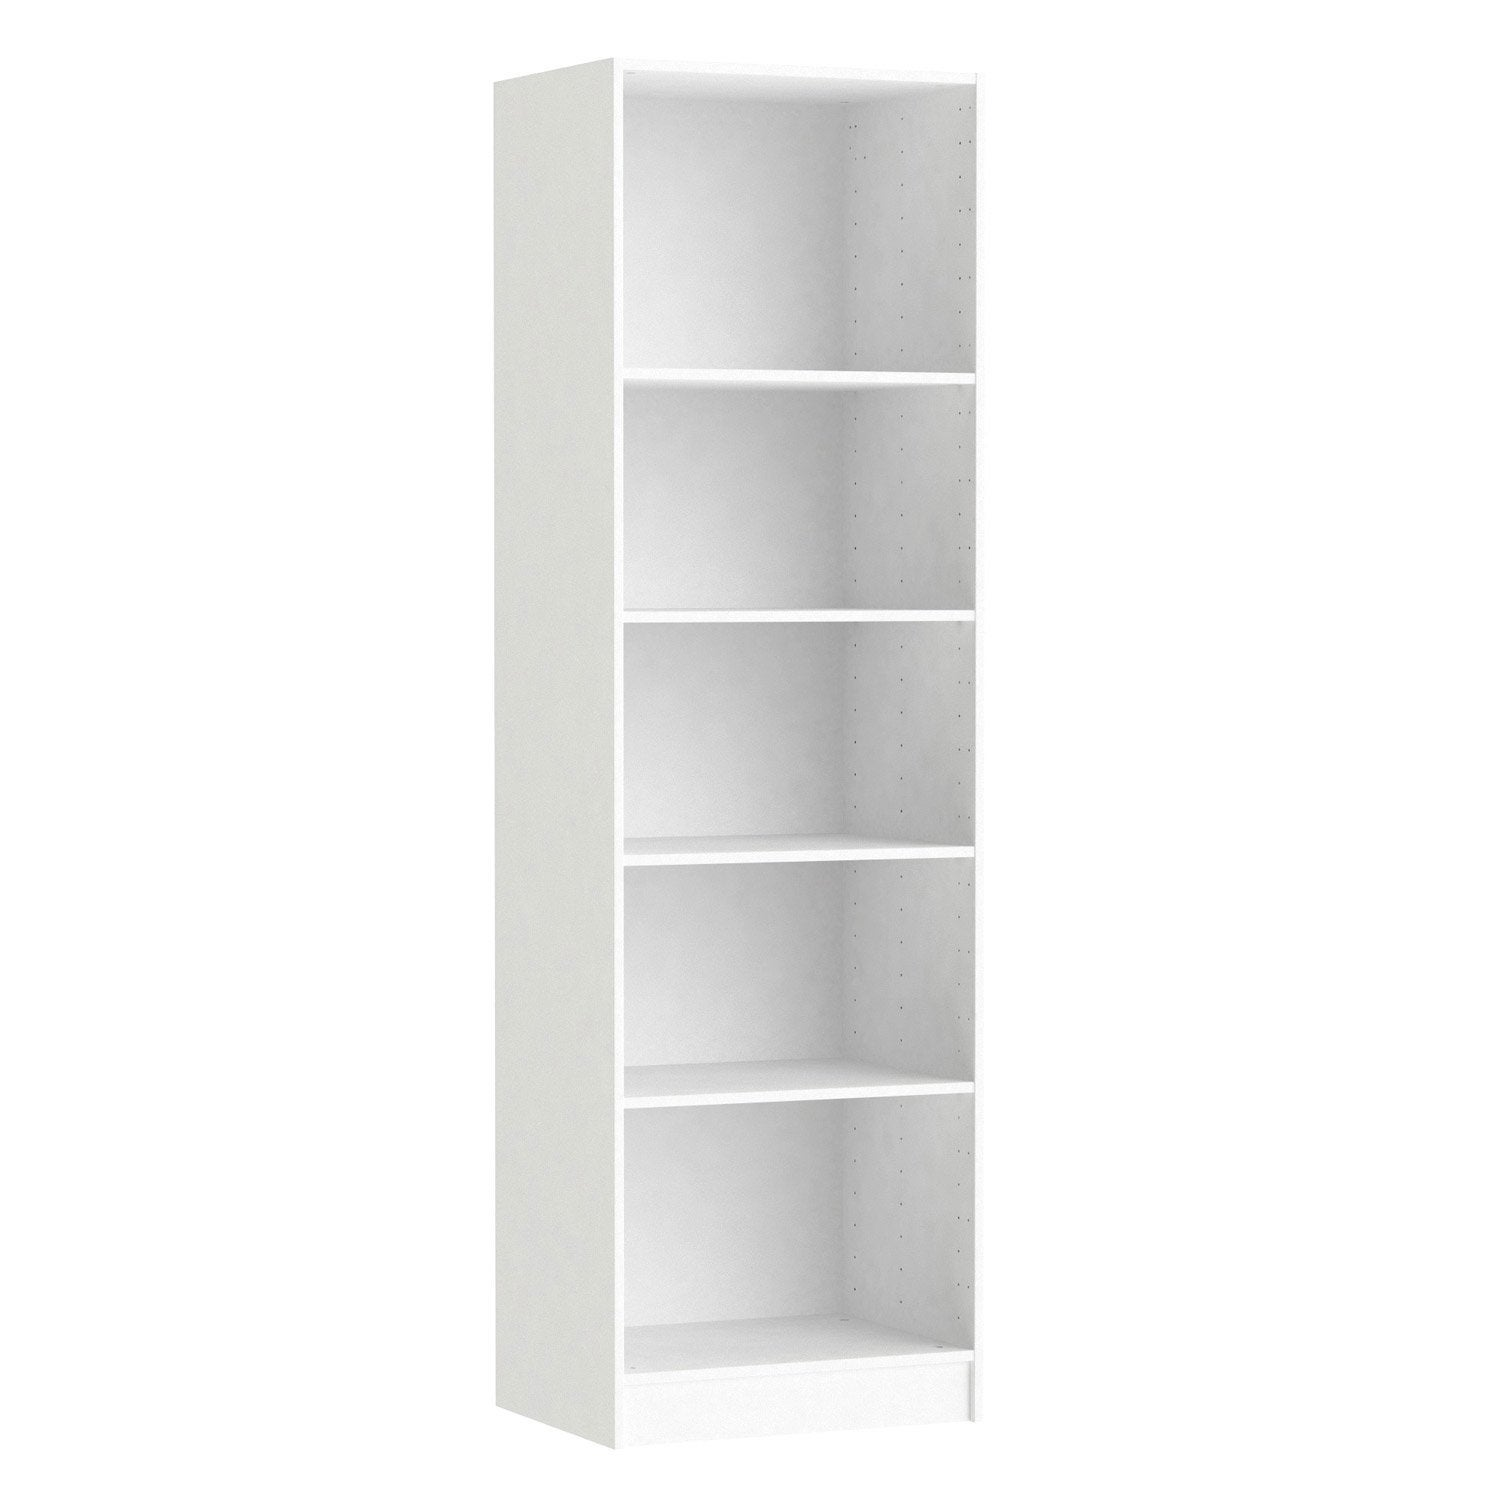 Caisson spaceo home 200 x 60 x 45 cm blanc leroy merlin - Amenagement placard leroy merlin ...